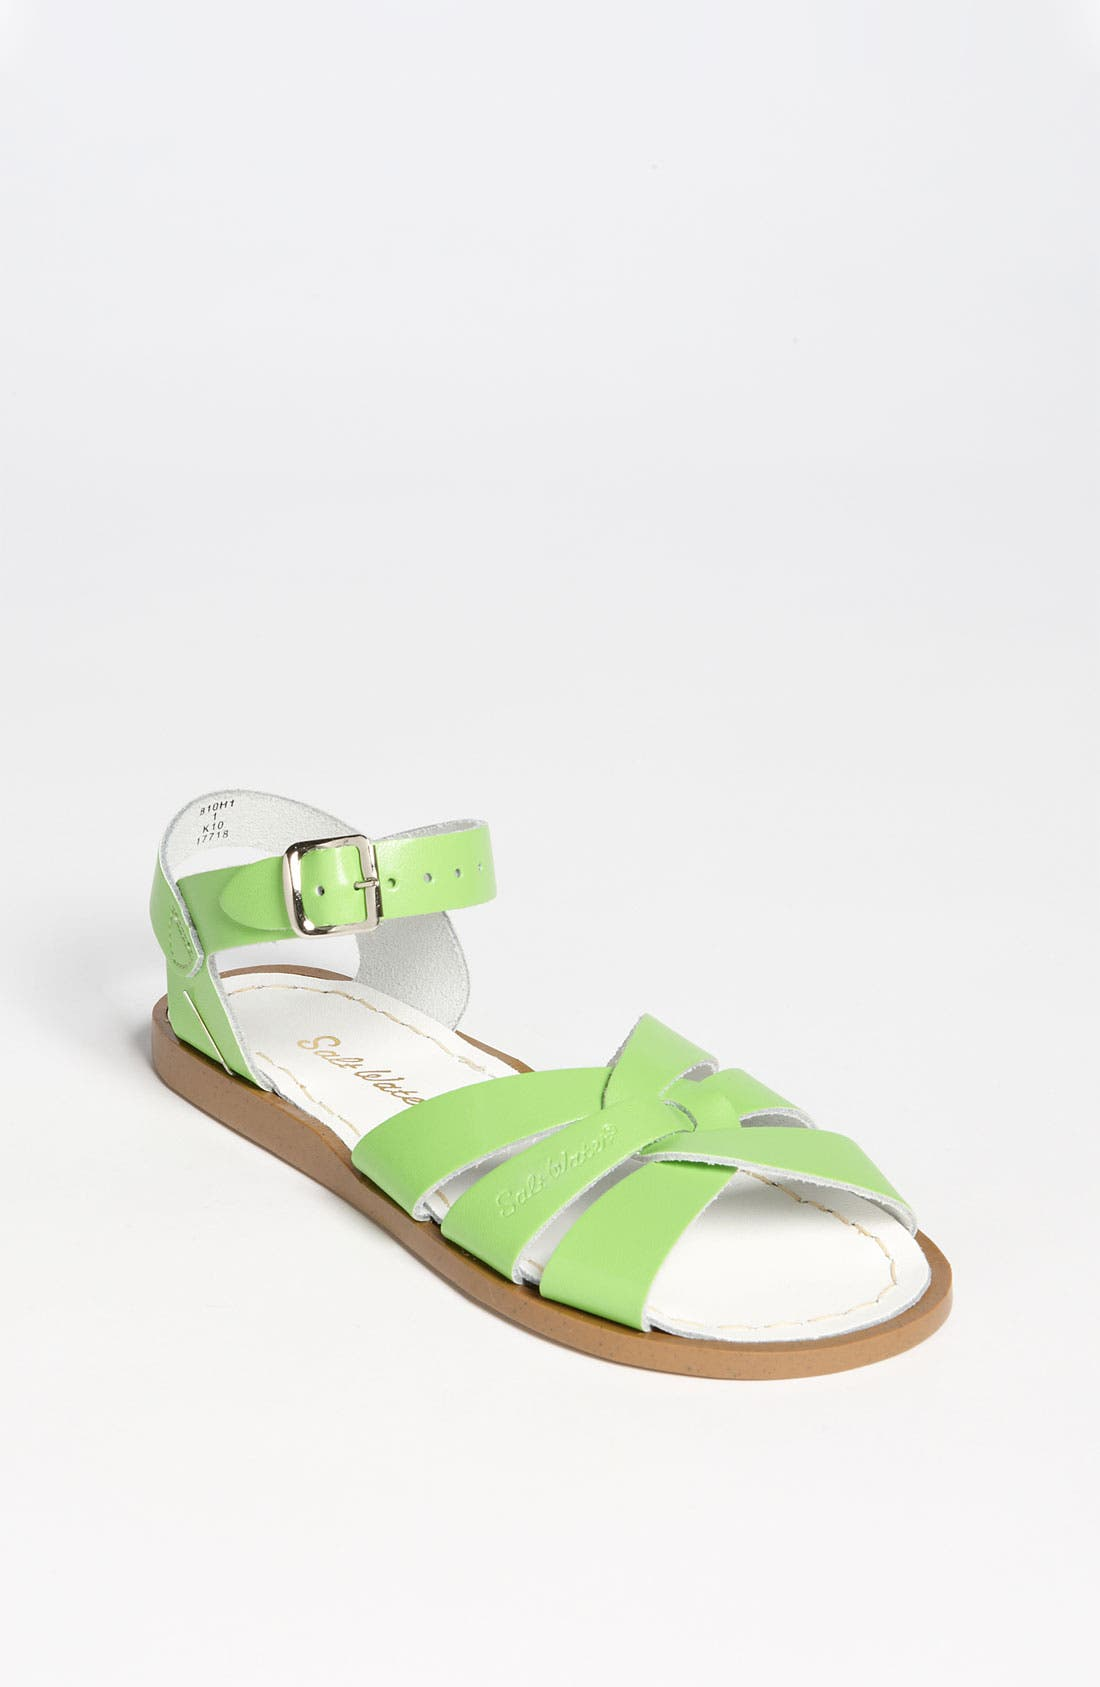 Main Image - Salt Water Sandals by Hoy Sandal (Baby, Walker, Toddler, Little Kid & Big Kid)